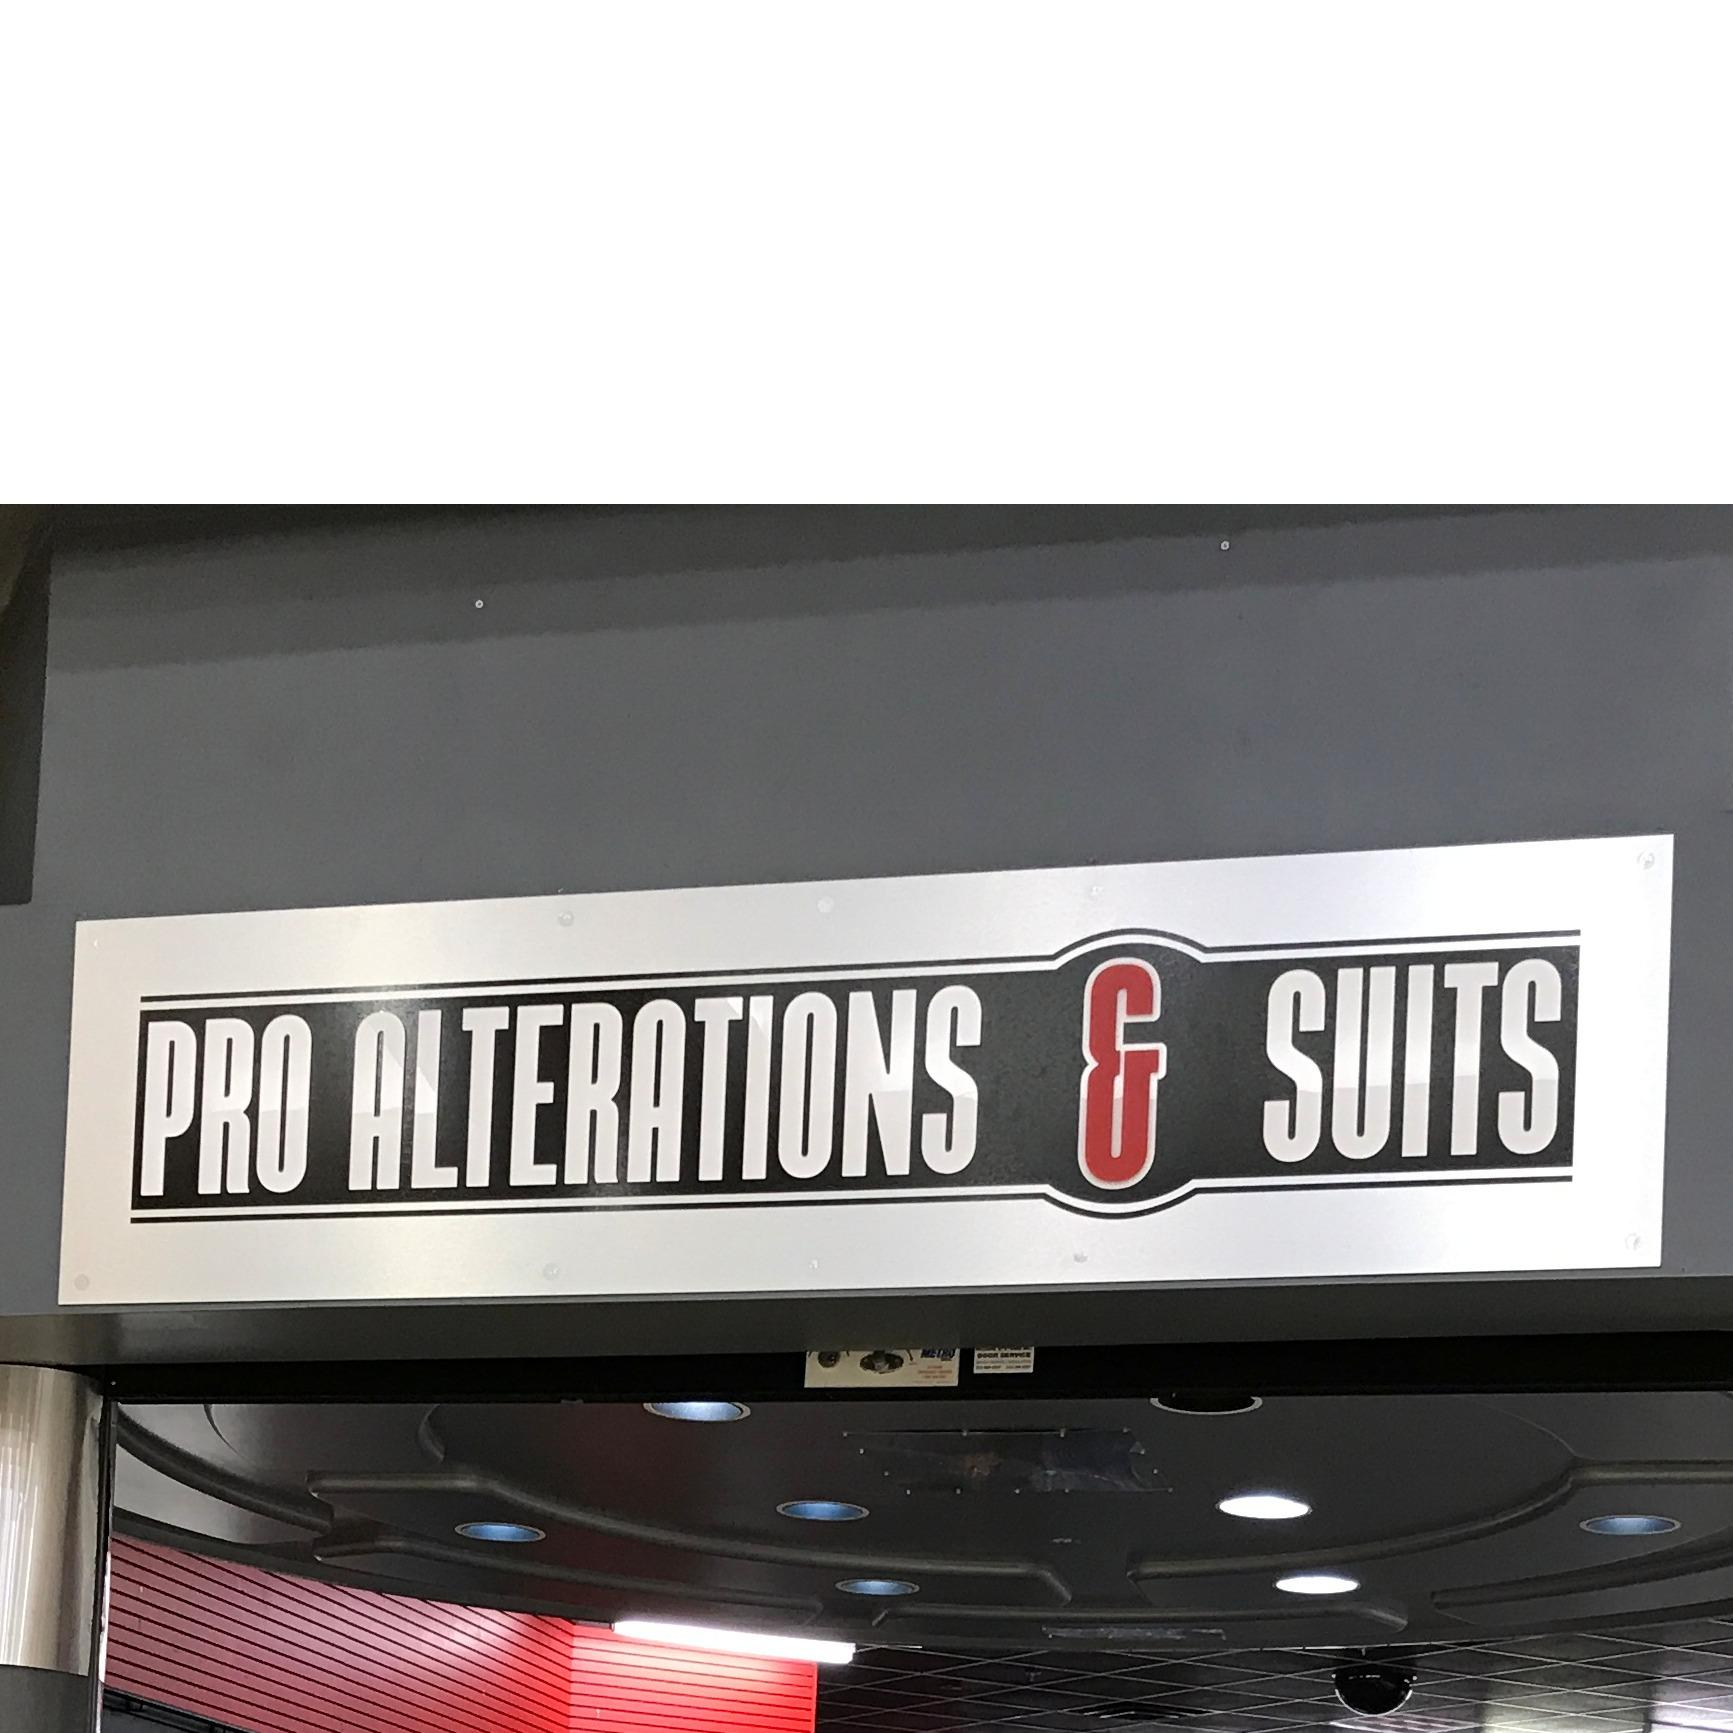 Pro Alterations & Suits